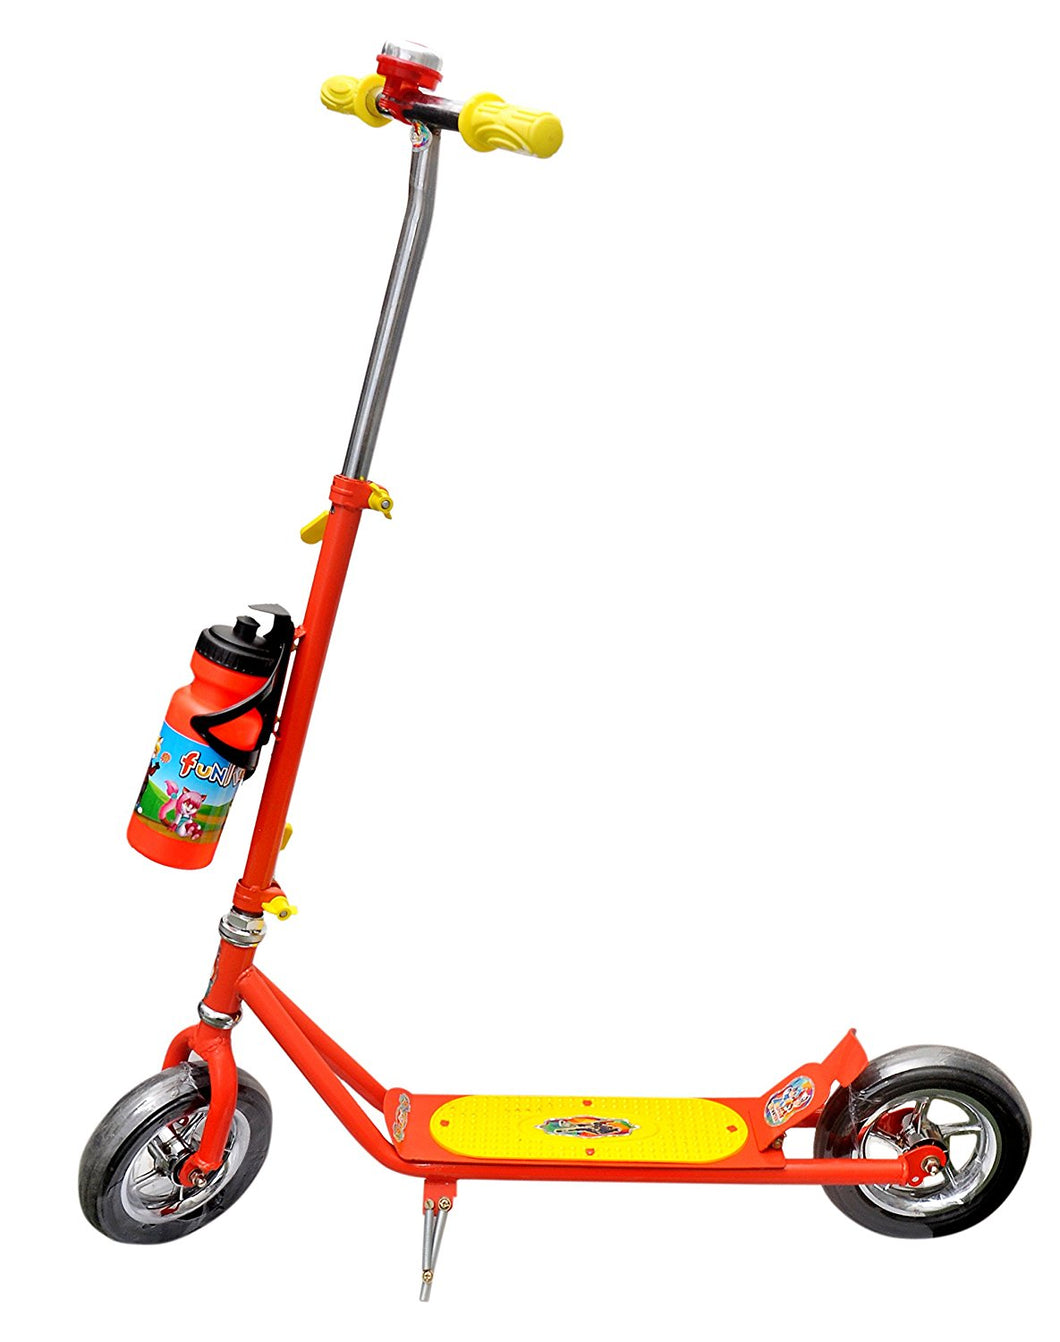 Toyshine Superior Height Adjustable Scooter Runner Ride-on with Heavy wheels, Handlebar Bell, Red/Blue, 5-10 Years